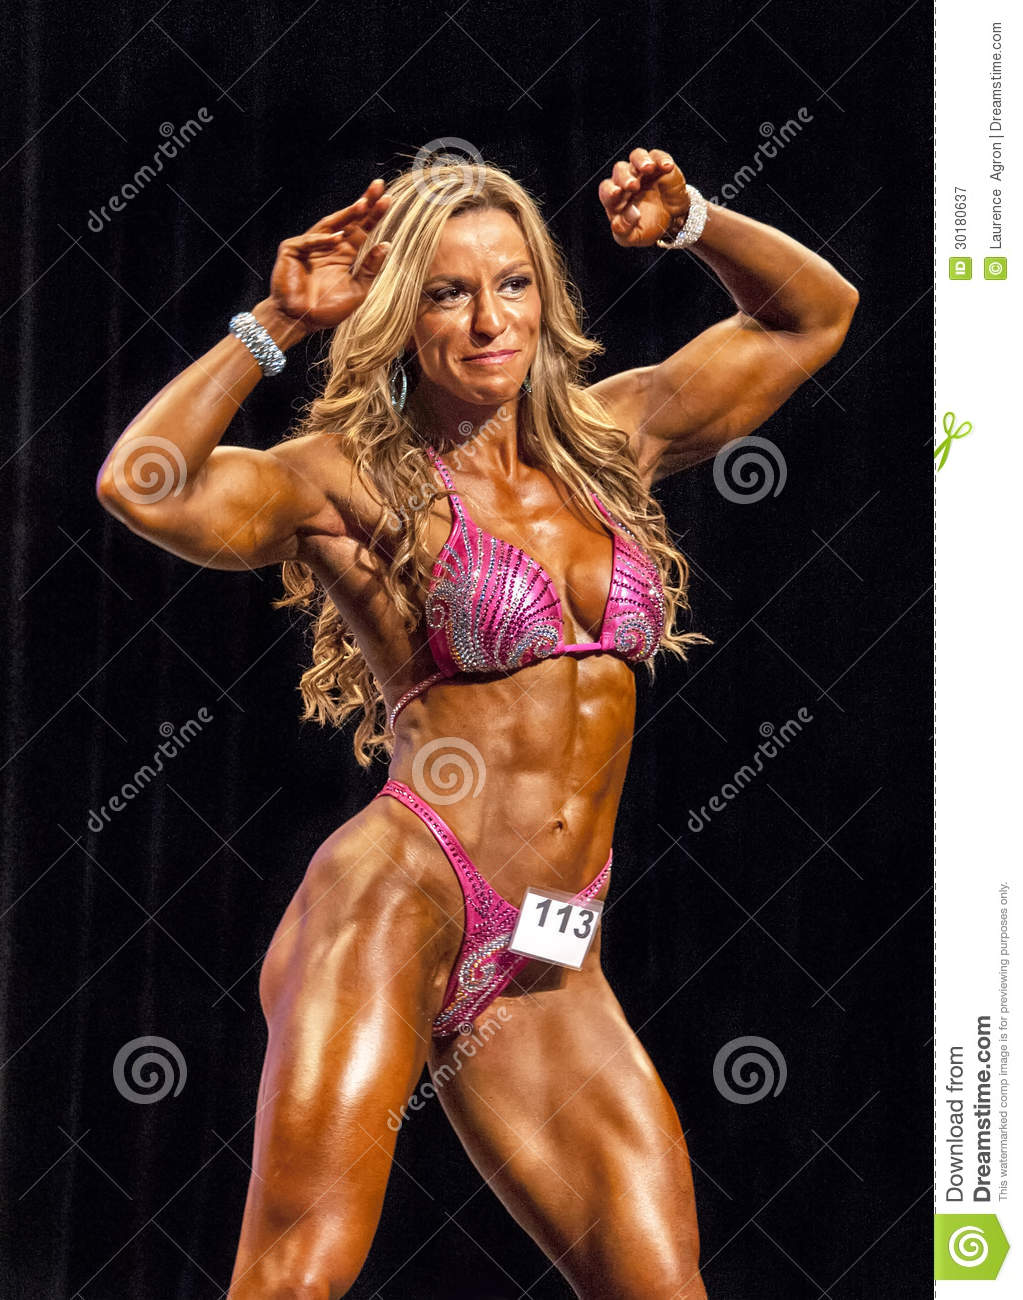 Muscle woman szex picture nude queen